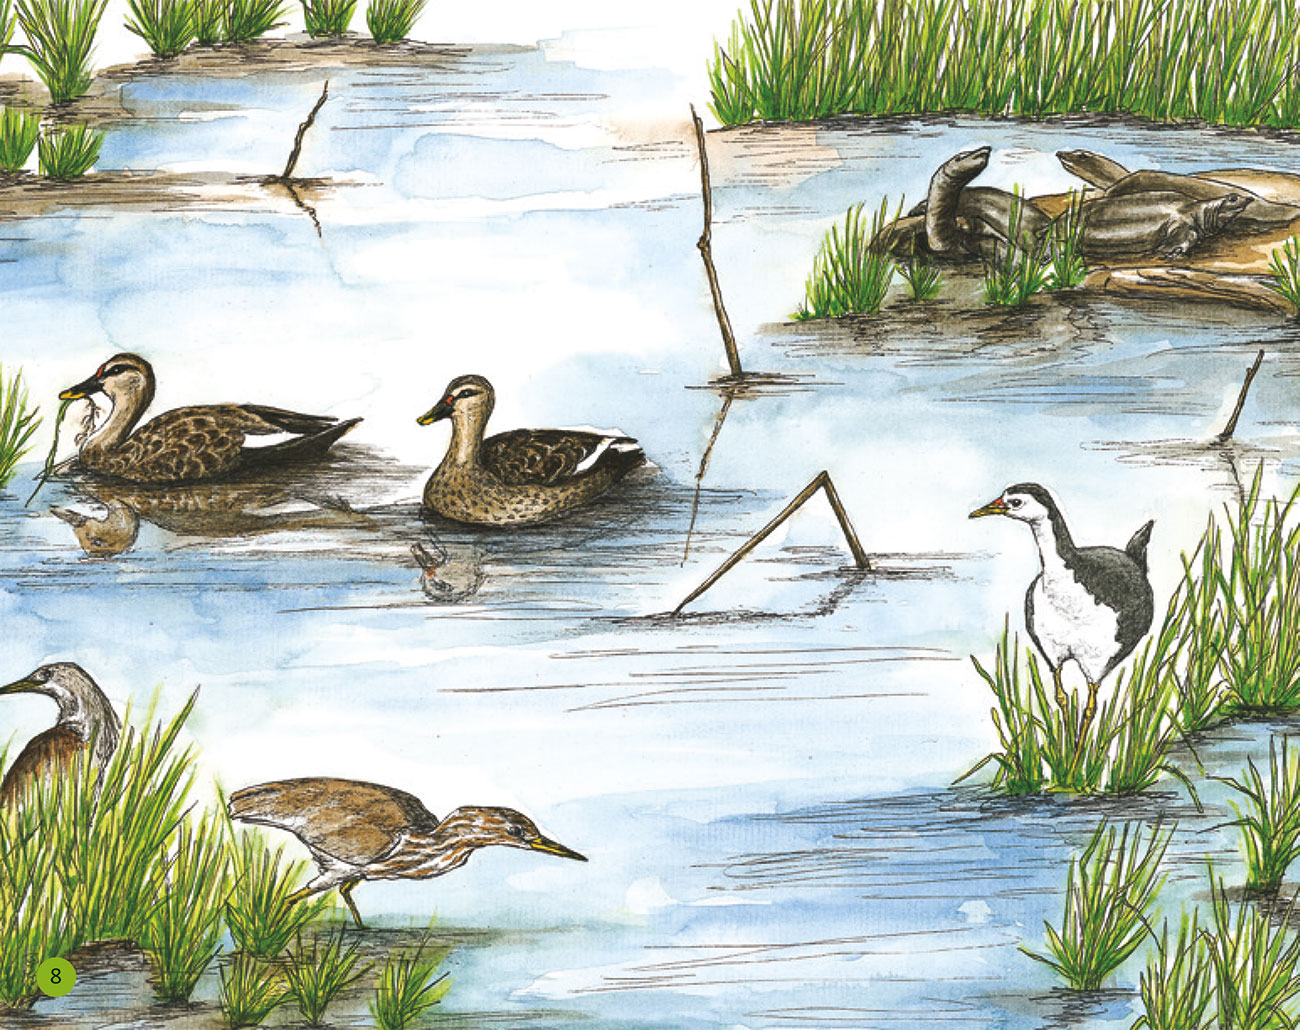 Bedtime story Wildlife in a City Pond page 10